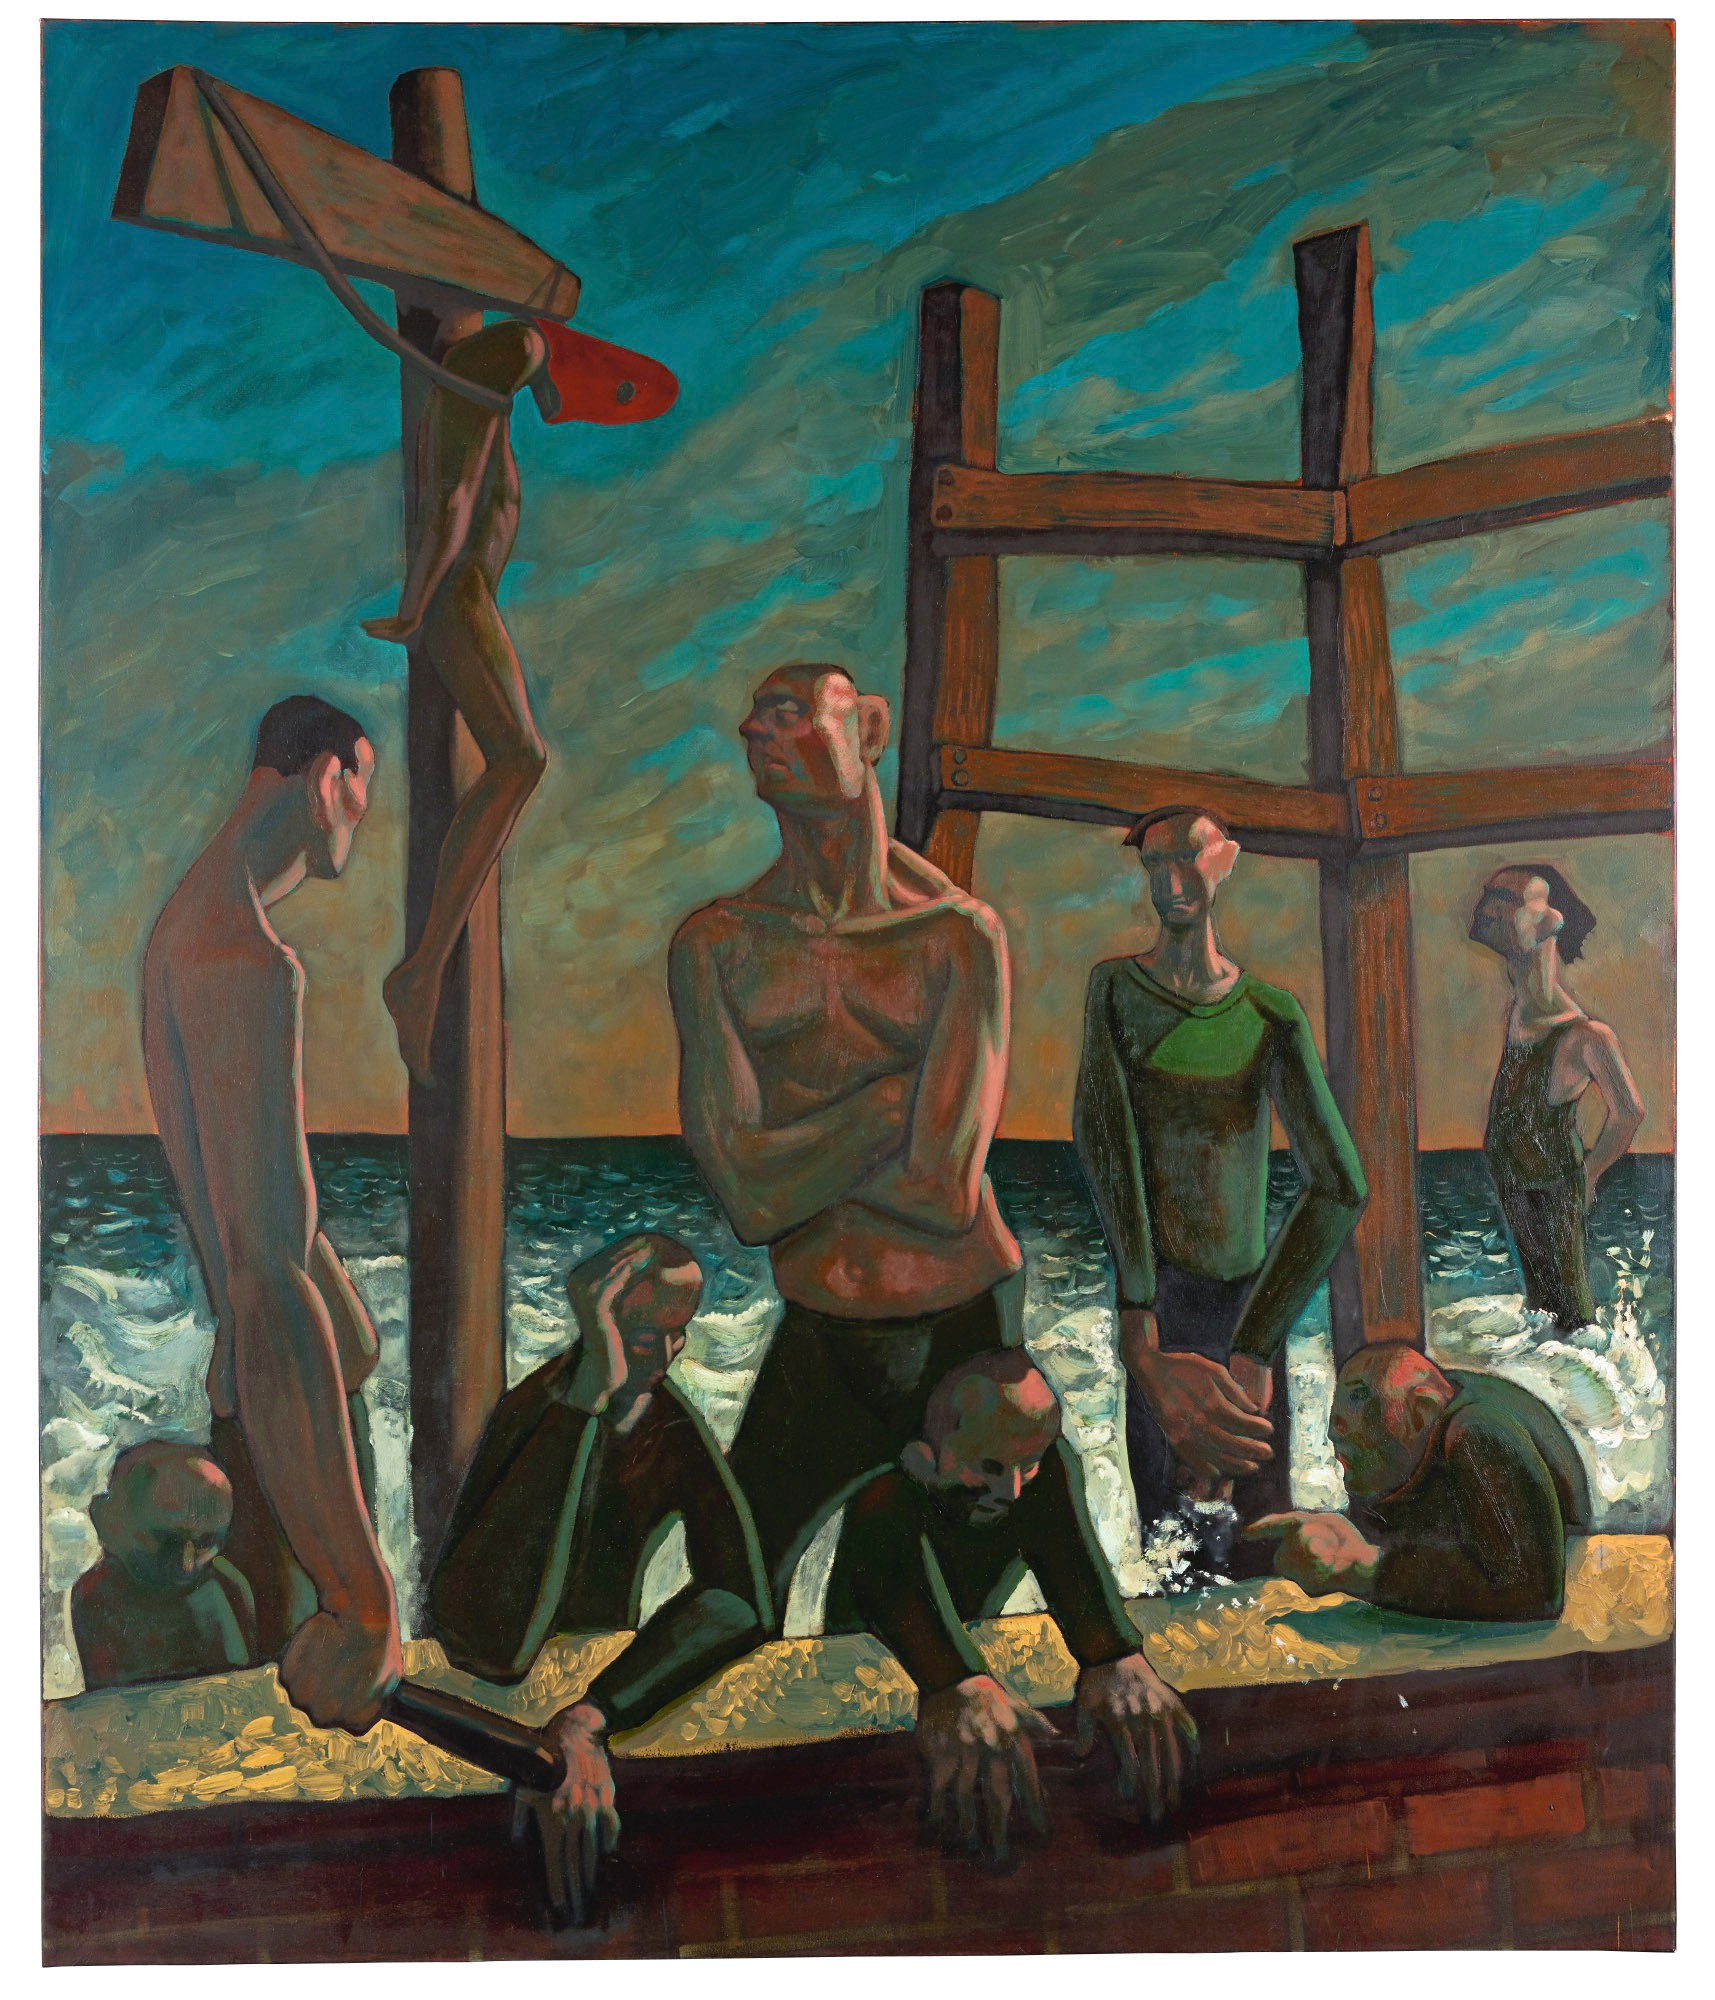 PETER HOWSON | CALM BEFORE THE STORM